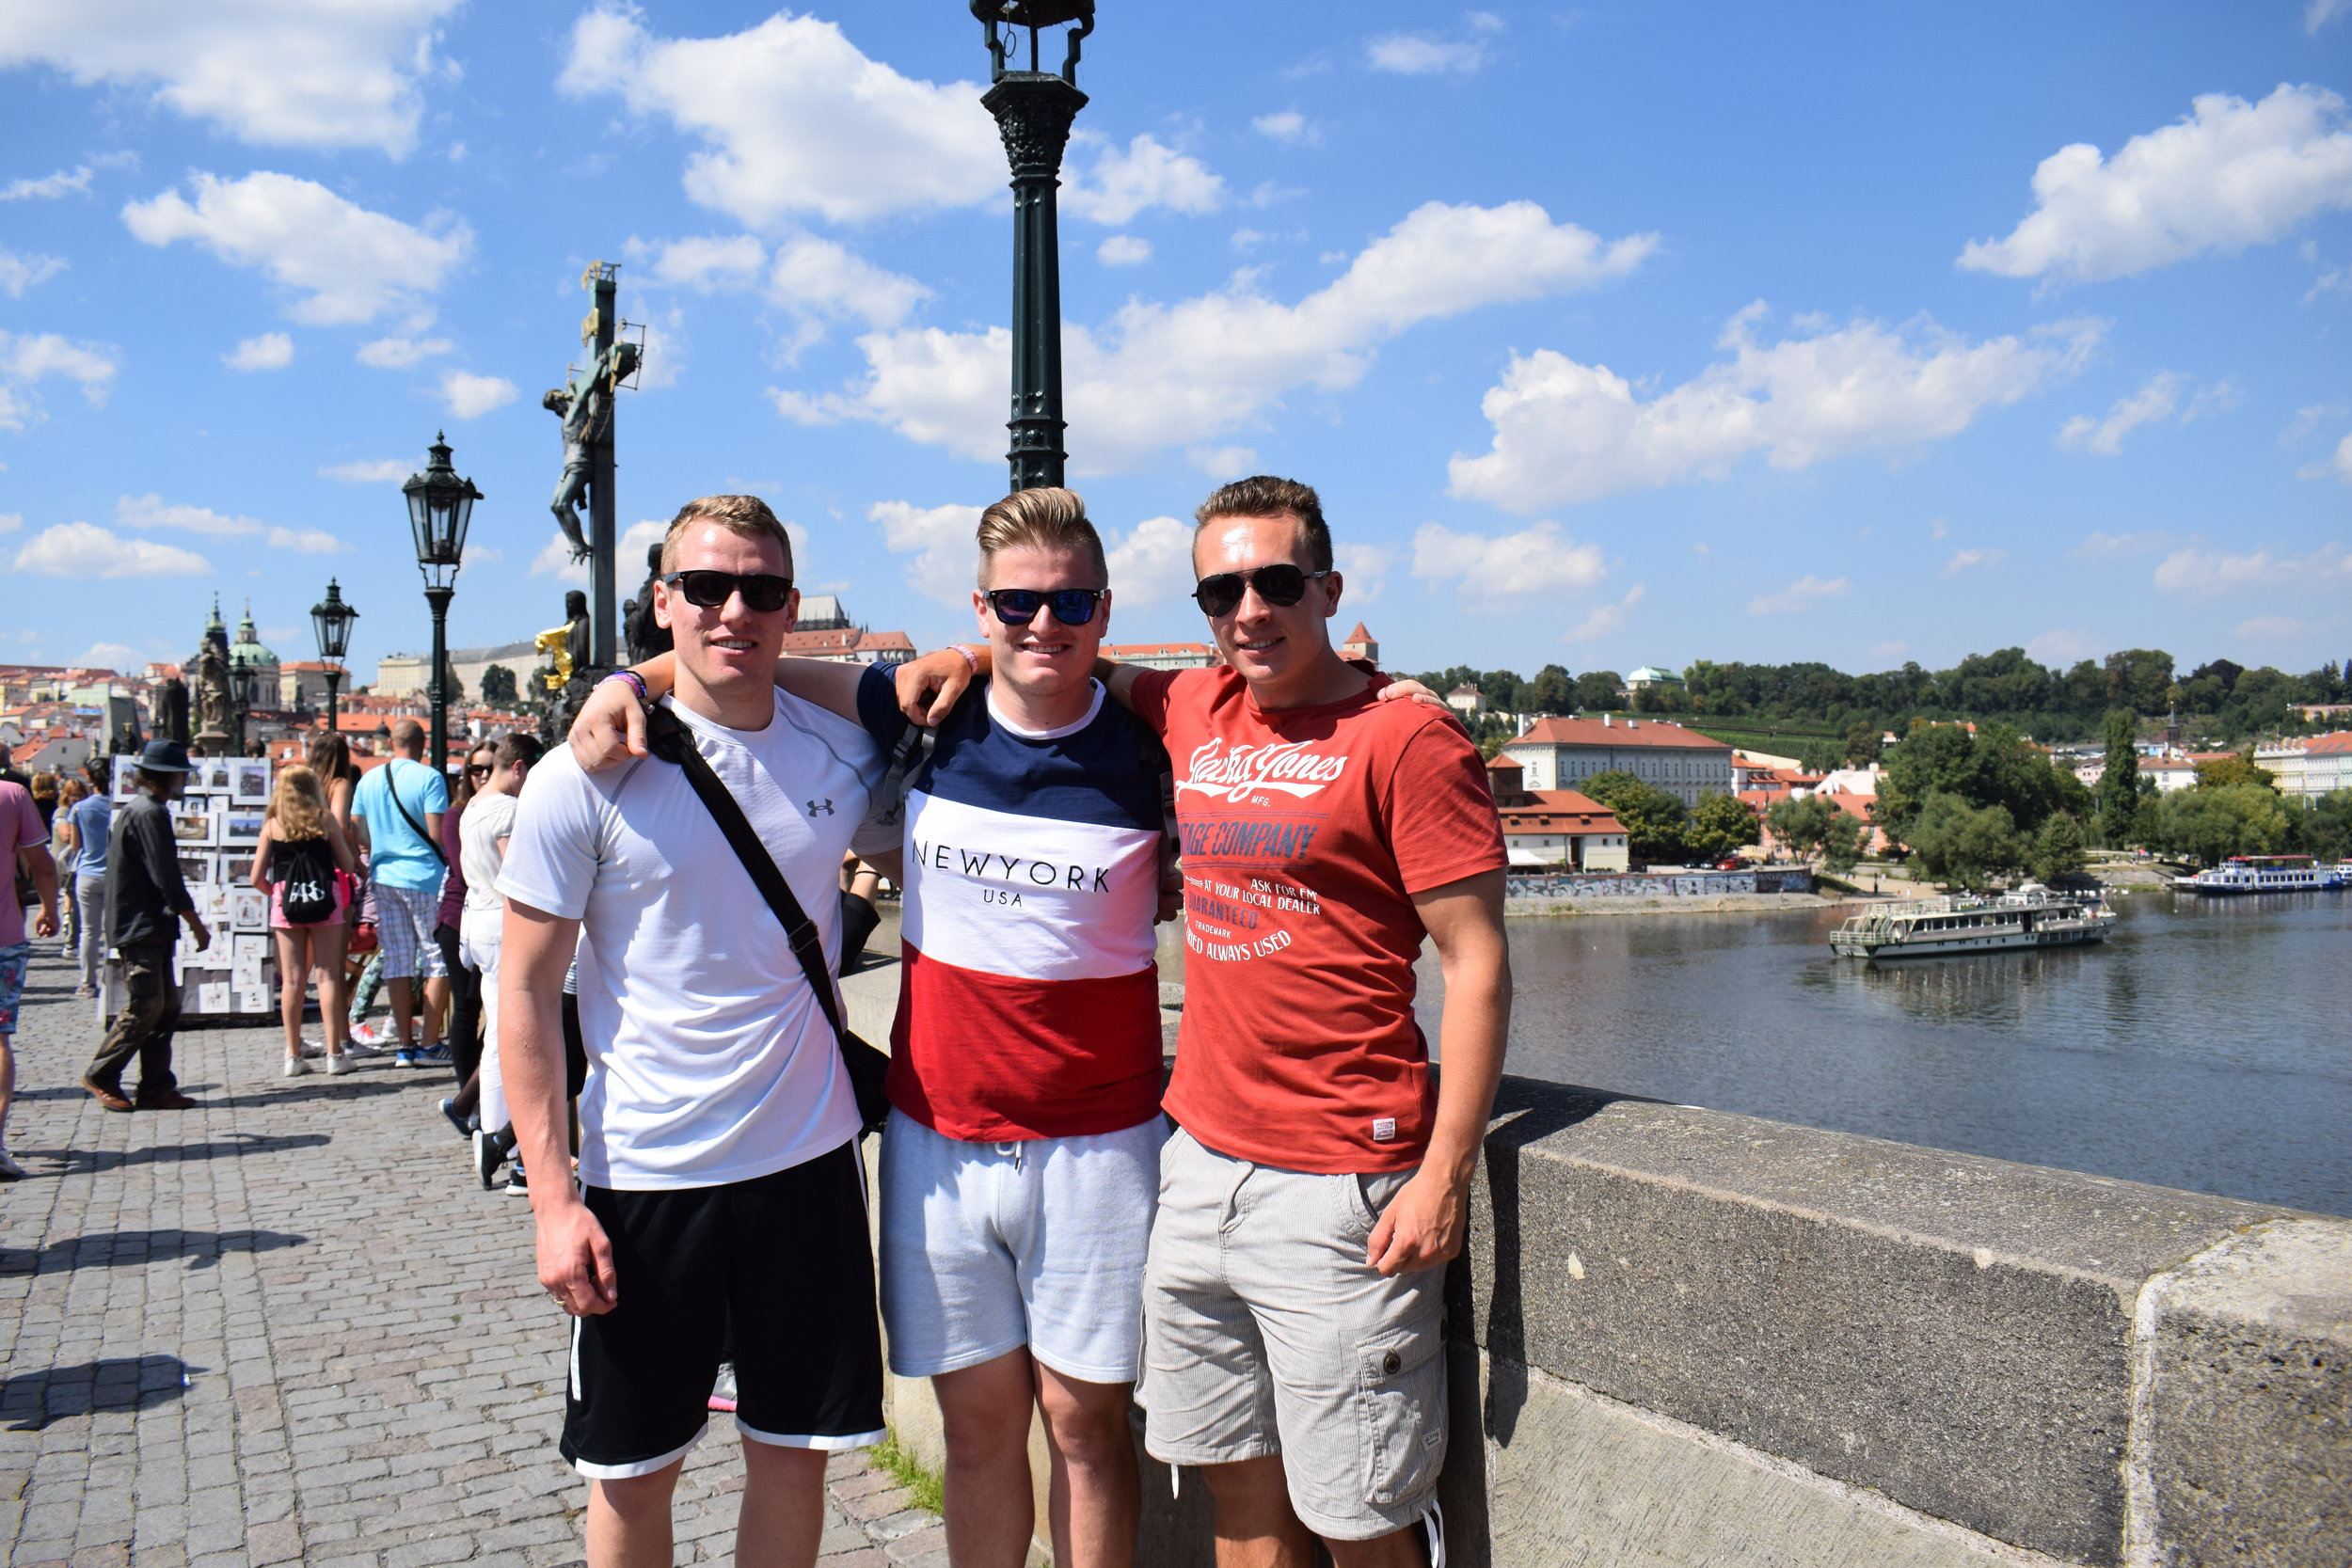 Don't be fooled by a critical blog post - I still had a great time in Prague, and so did my friends. Here we are standing, and smiling, on Charles Bridge.